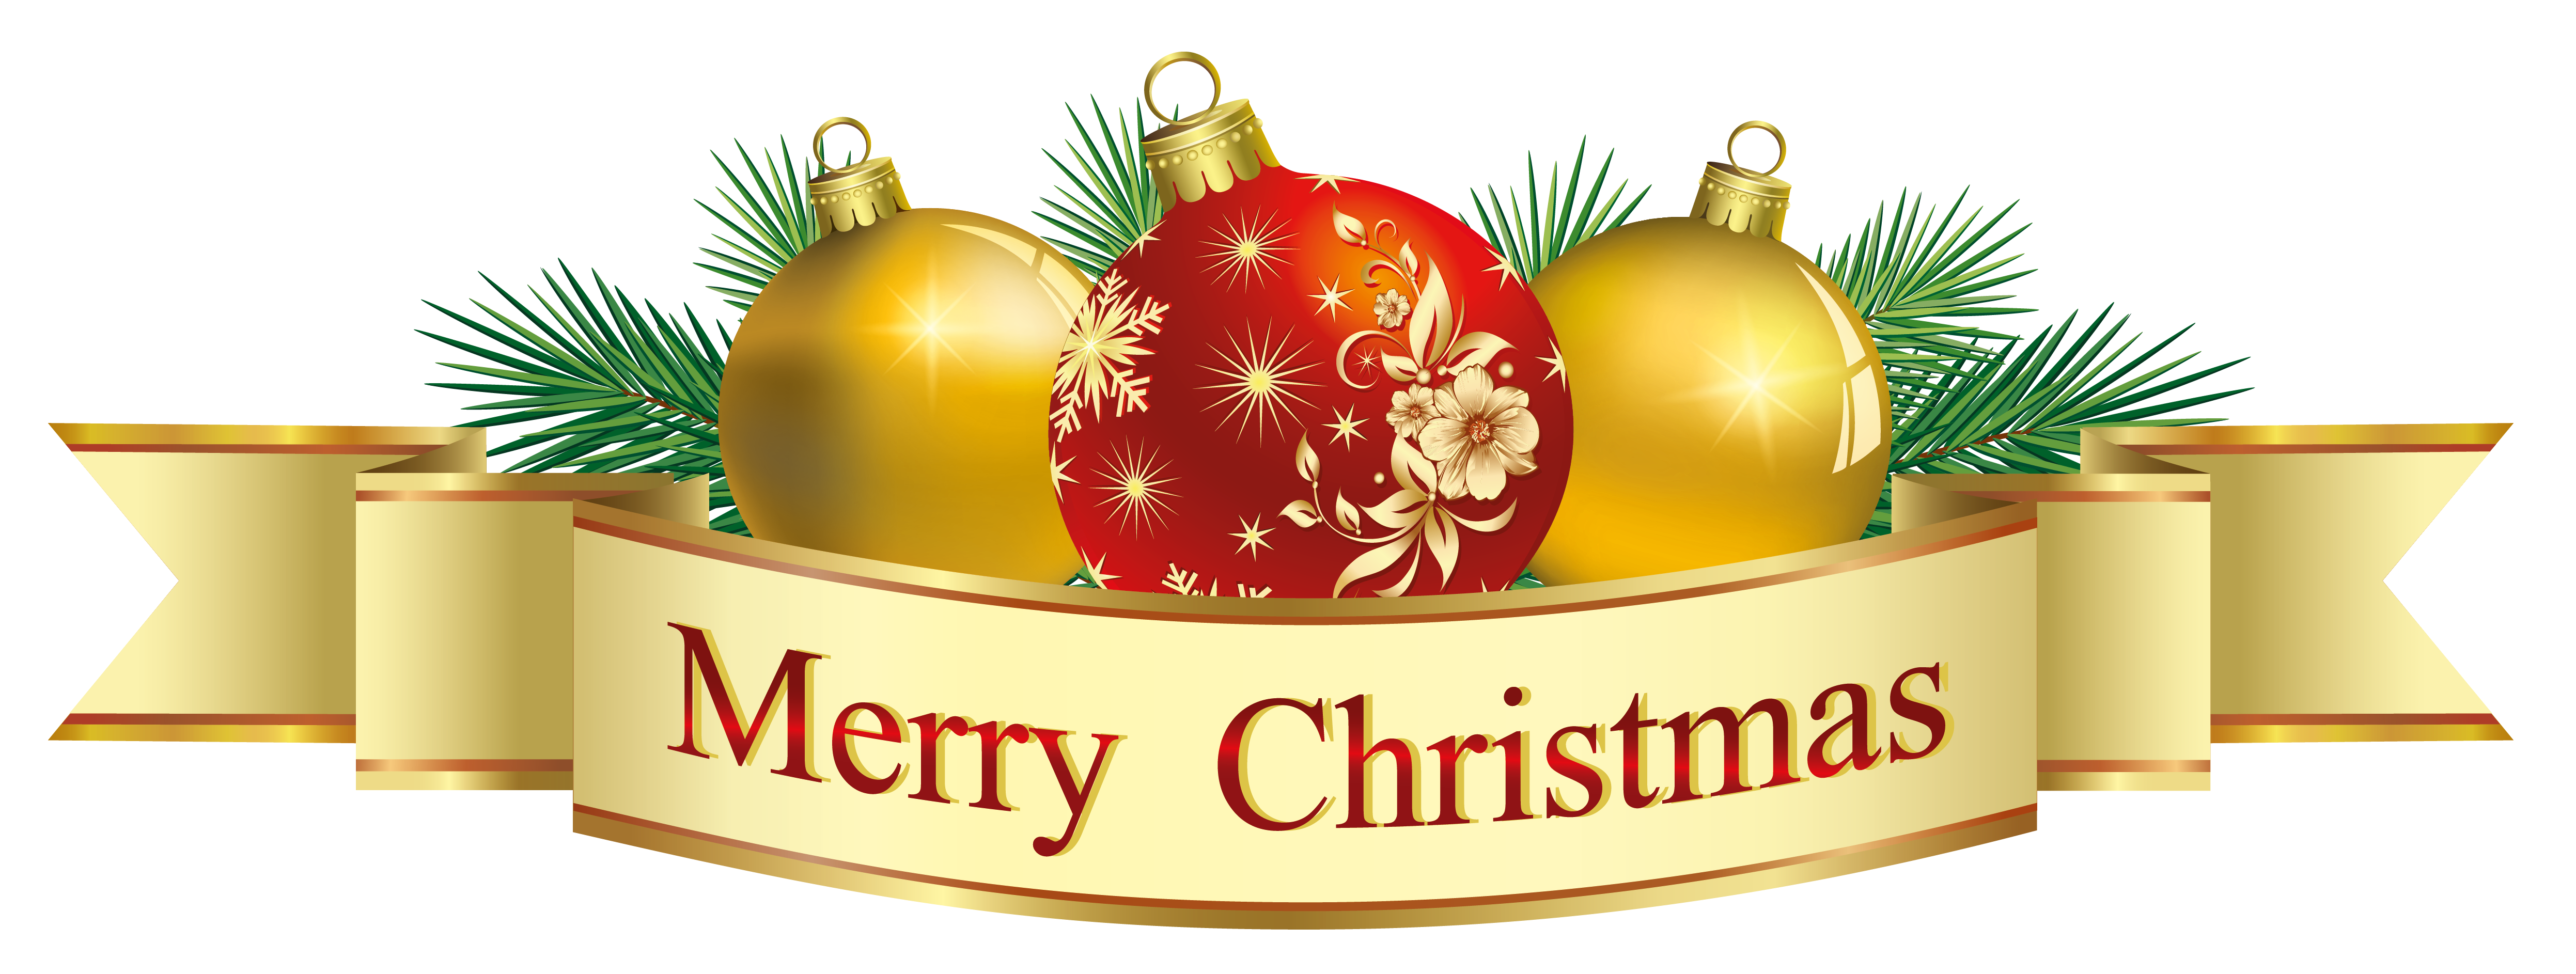 Clipart mom merry christmas. Transparent deco gallery yopriceville